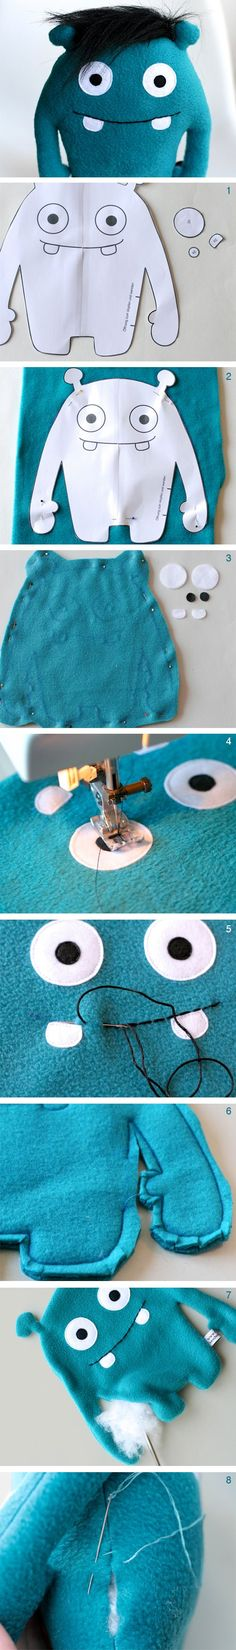 DIY-Nähanleitung für ein niedliches Monster aus Plüsch, Spielzeug selbermachen / diy sewing tutorial for a cuddly monster, gift idea via DaWanda.com